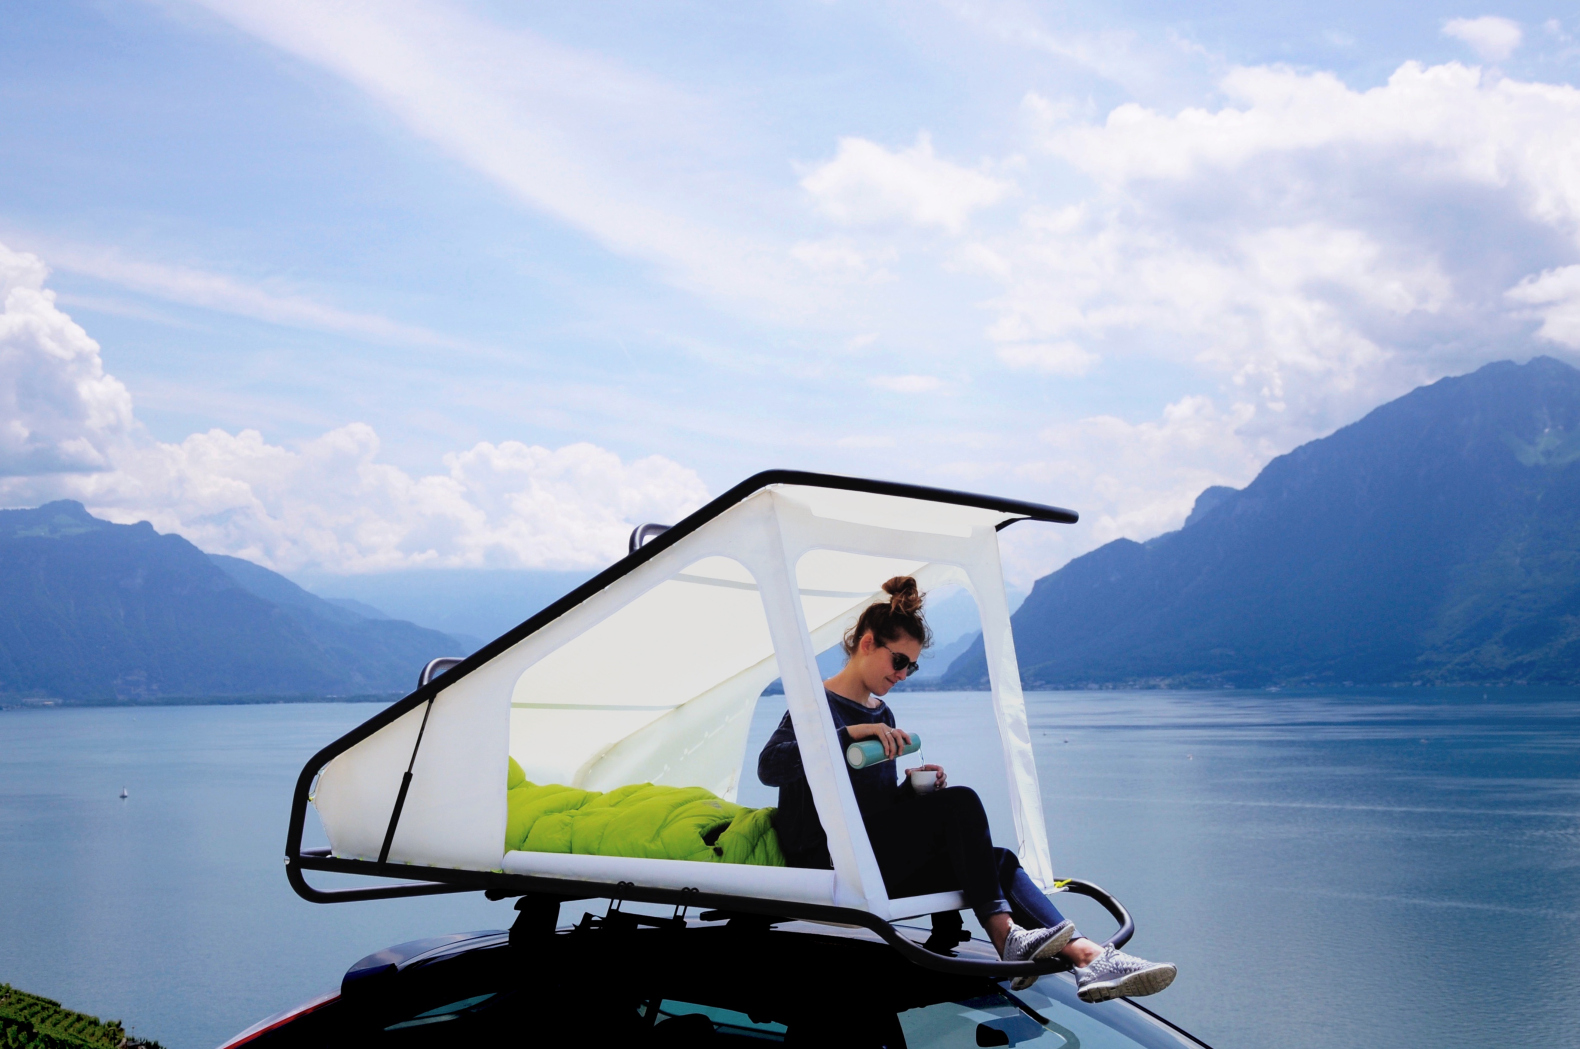 Sebastian Maluska's pop-up rooftop tent converts any car into a camper